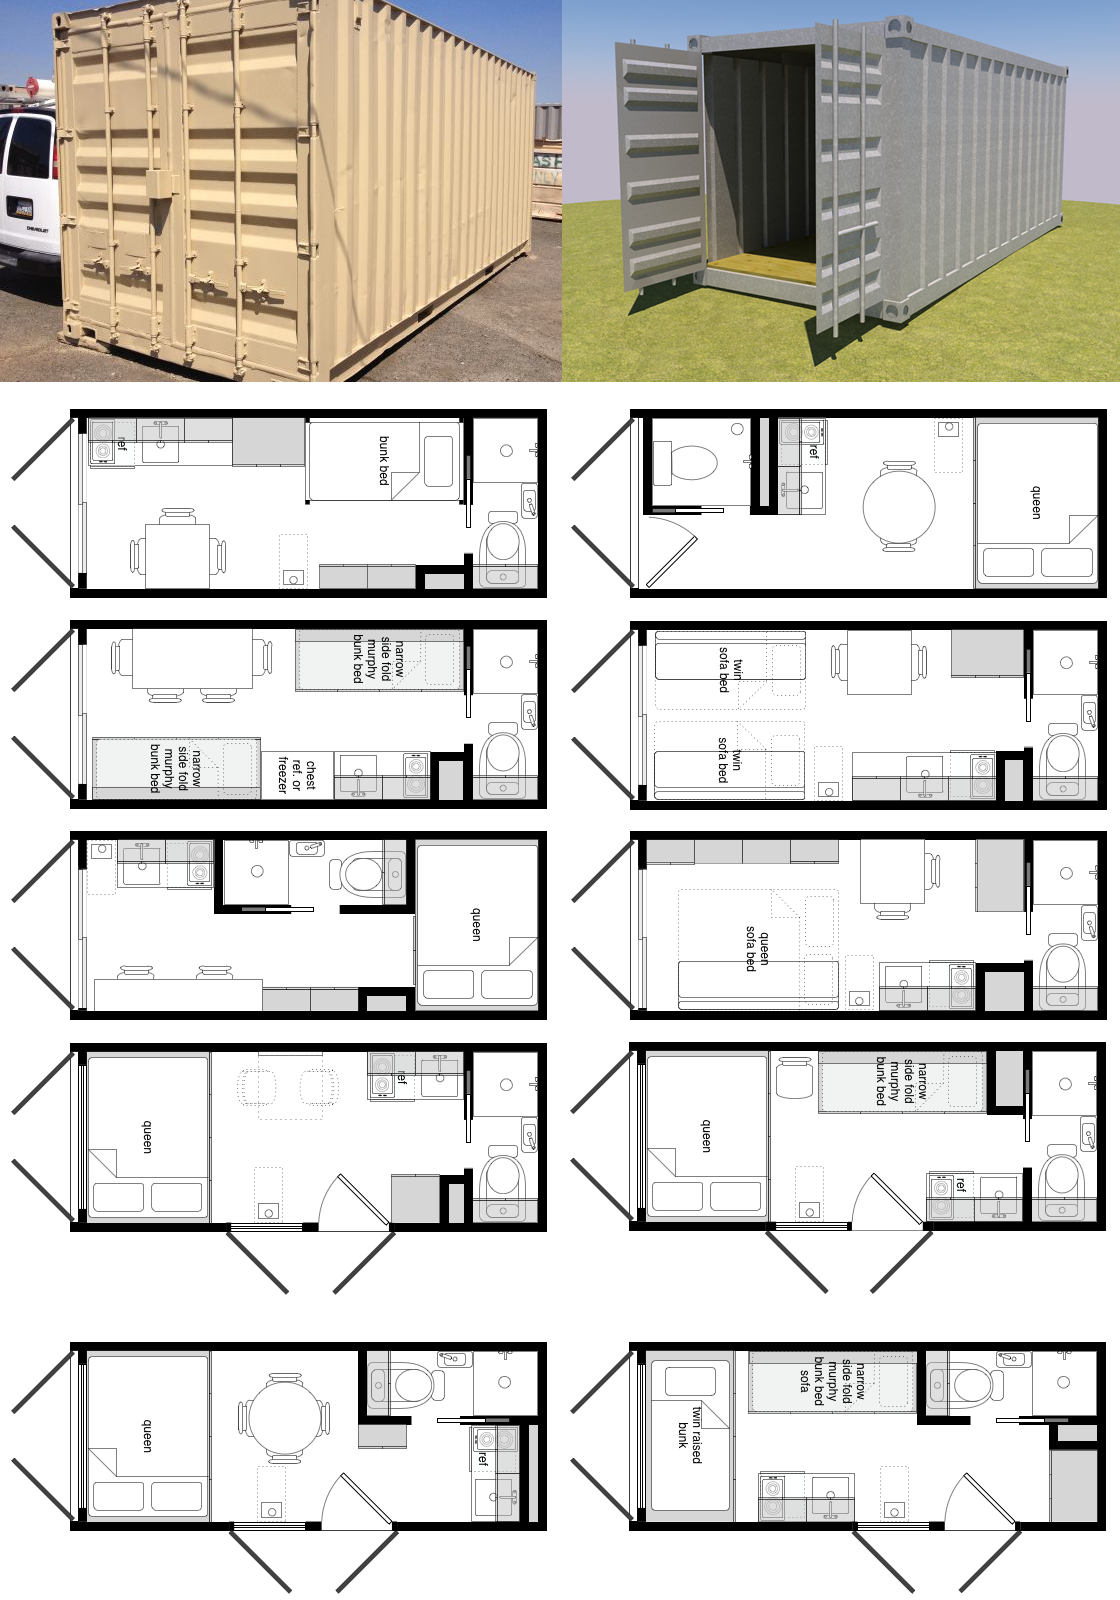 Shipping Container Home Floor Plans | 20-Foot Shipping Container ...